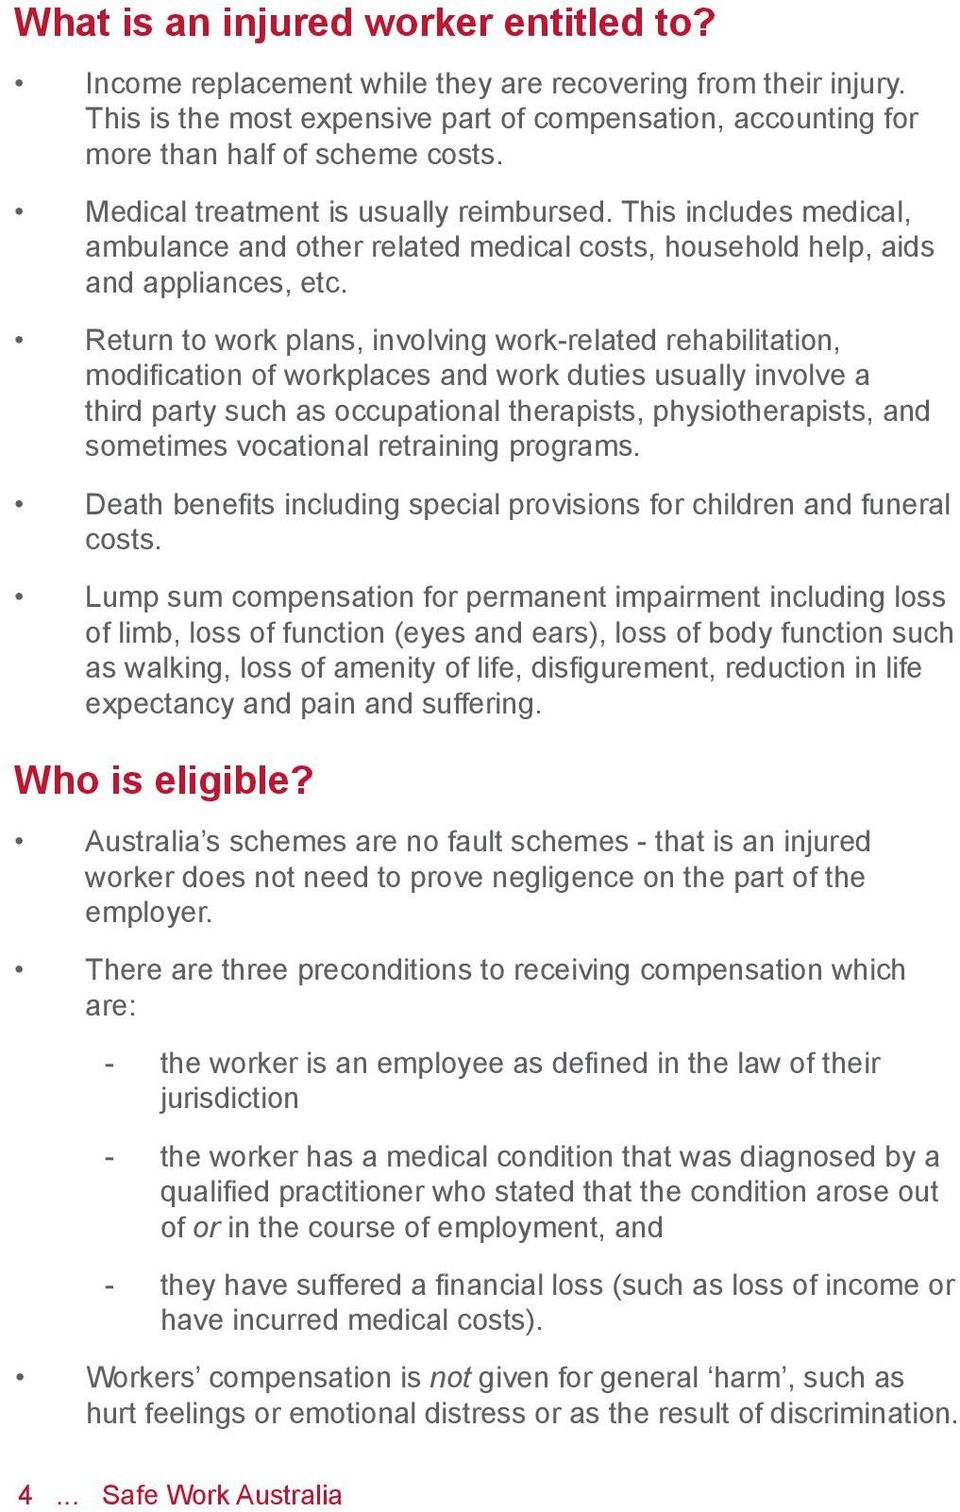 Return to work plans, involving work-related rehabilitation, modification of workplaces and work duties usually involve a third party such as occupational therapists, physiotherapists, and sometimes